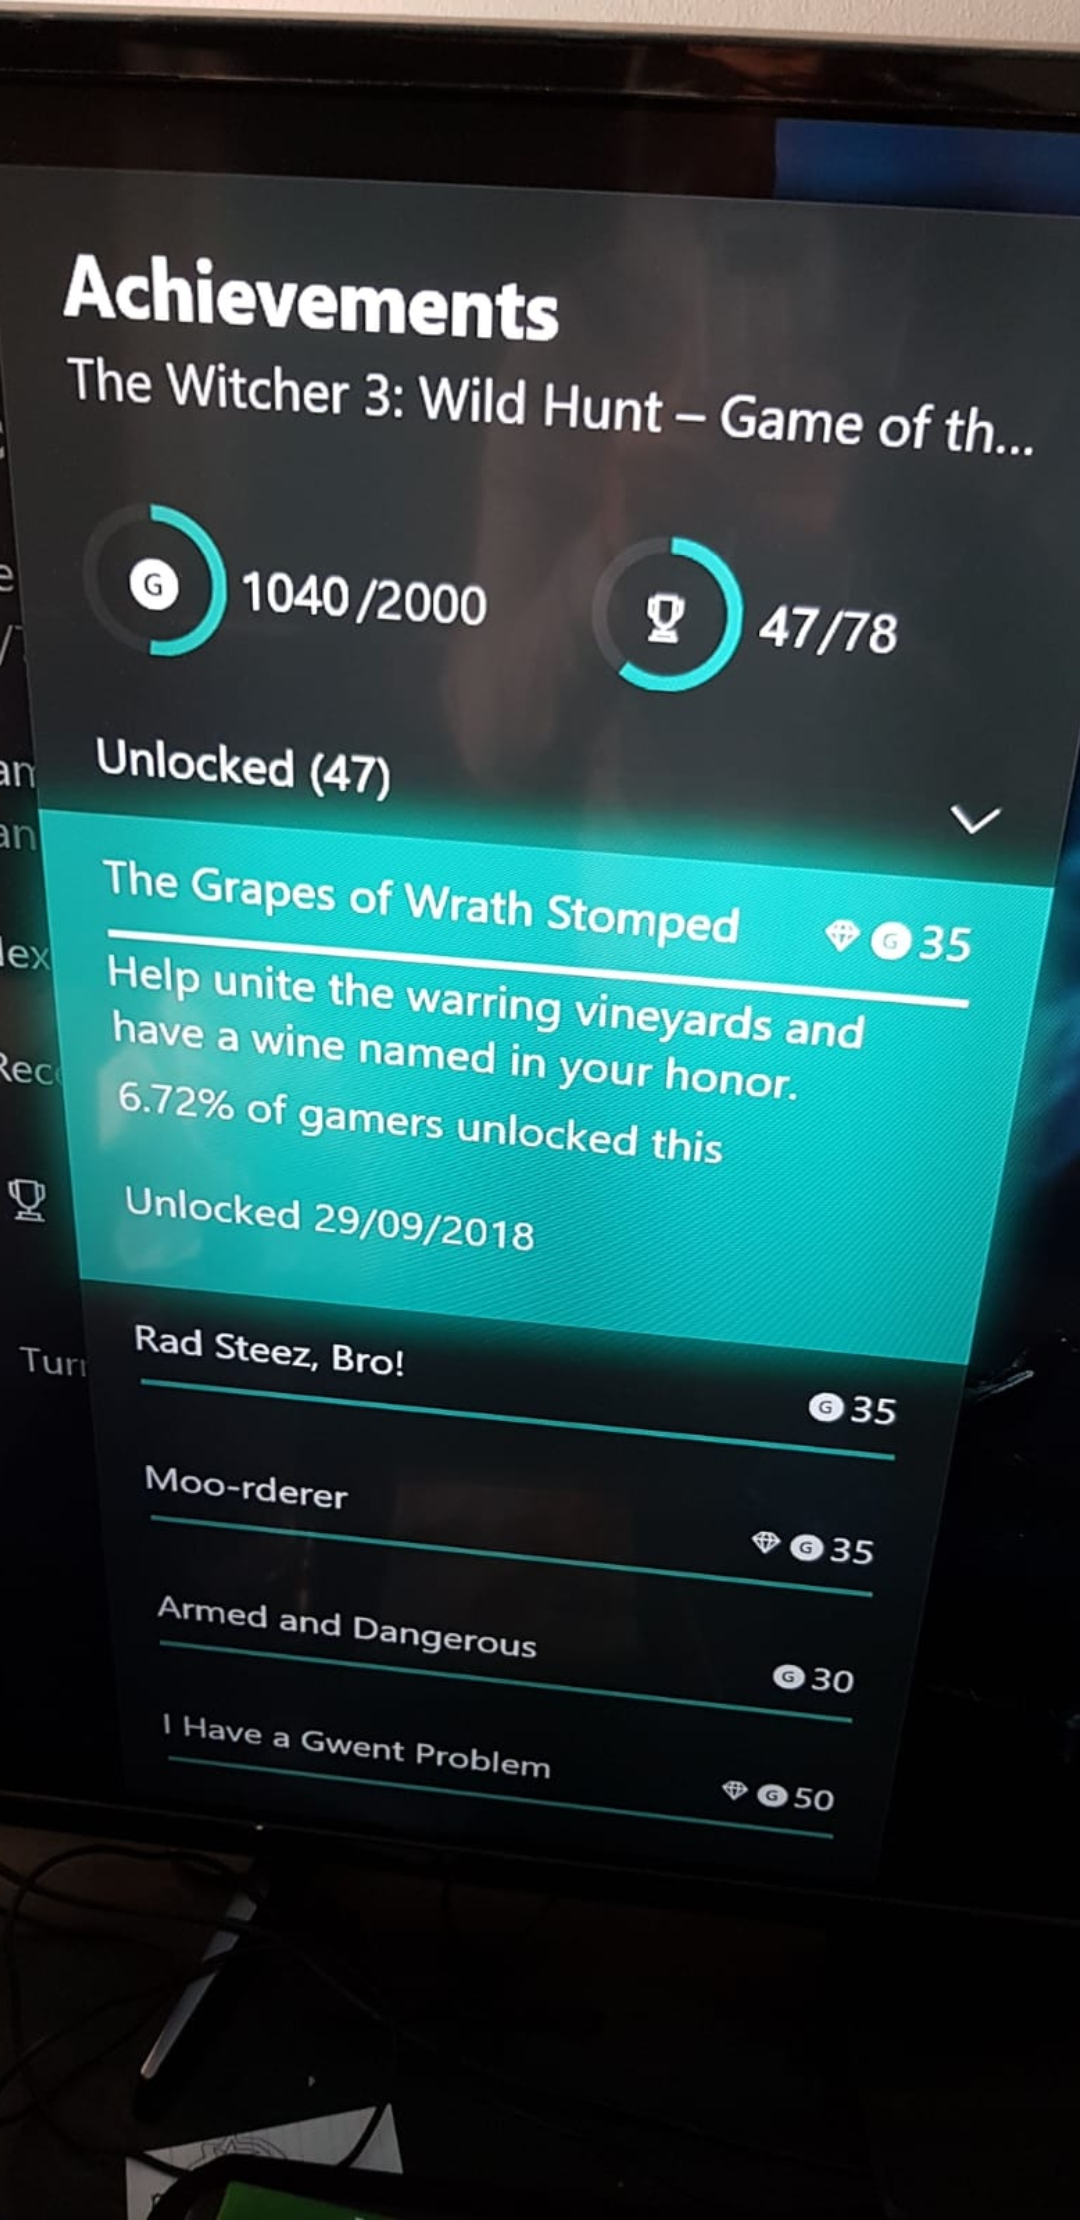 Witcher 3 goty edition achievements not registering - Microsoft